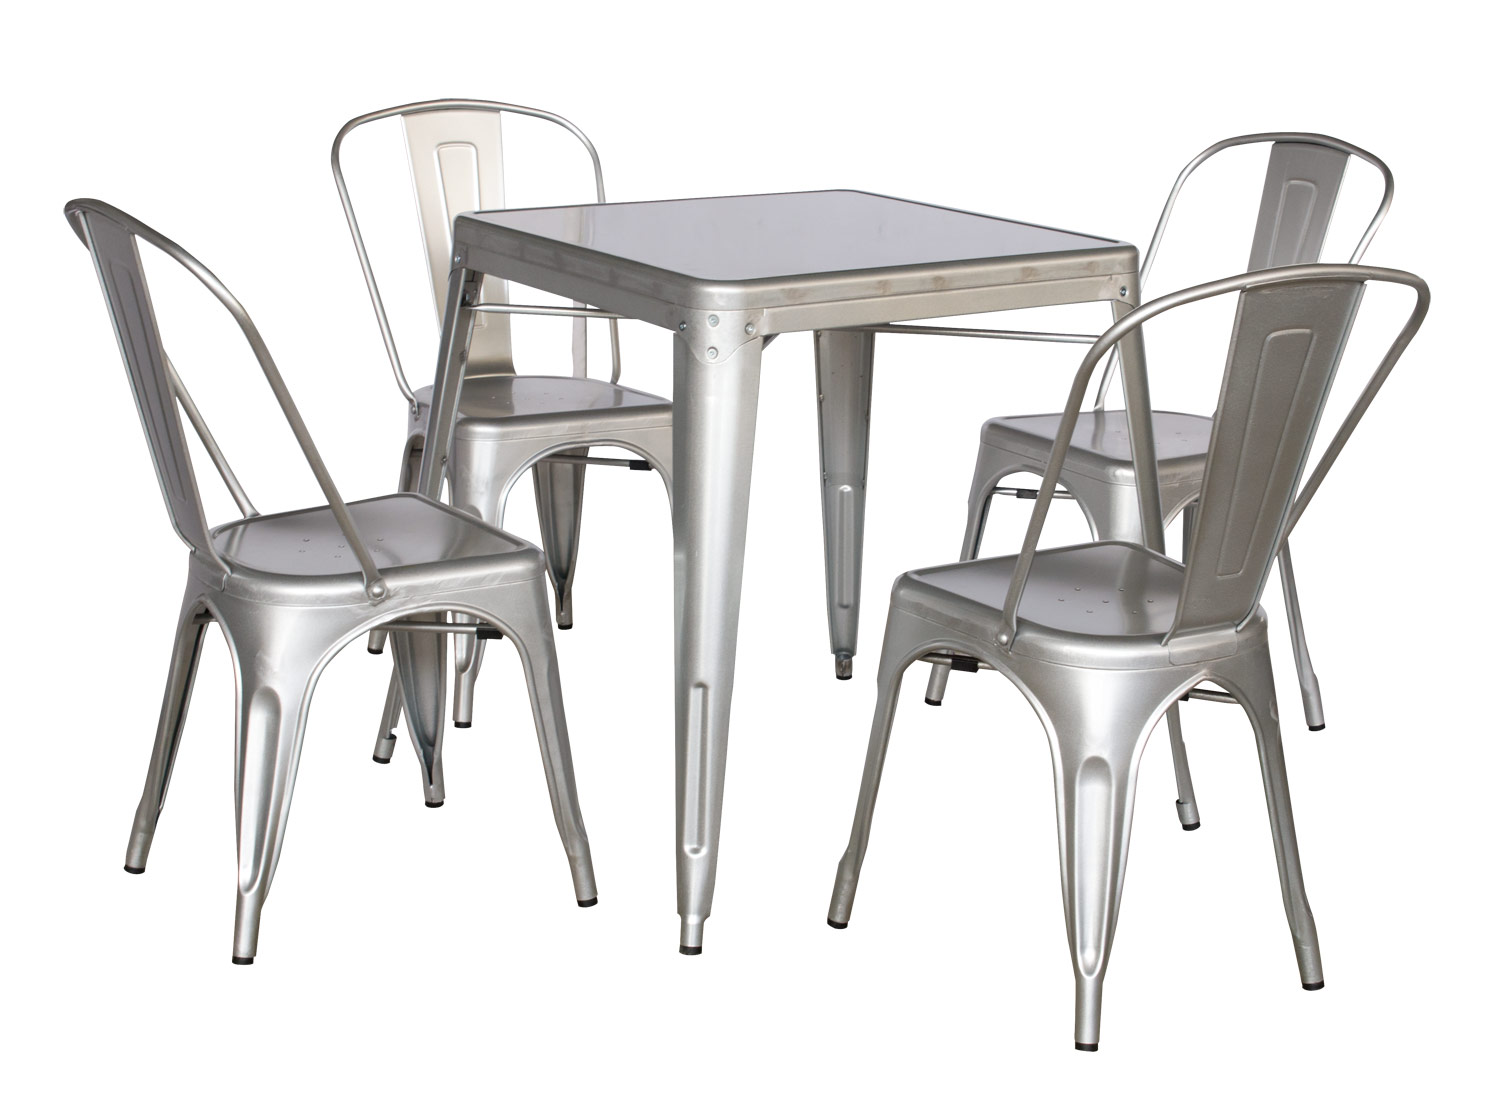 Chintaly Imports 8029 Galvanized Steel Dining Set - Shiny Silver